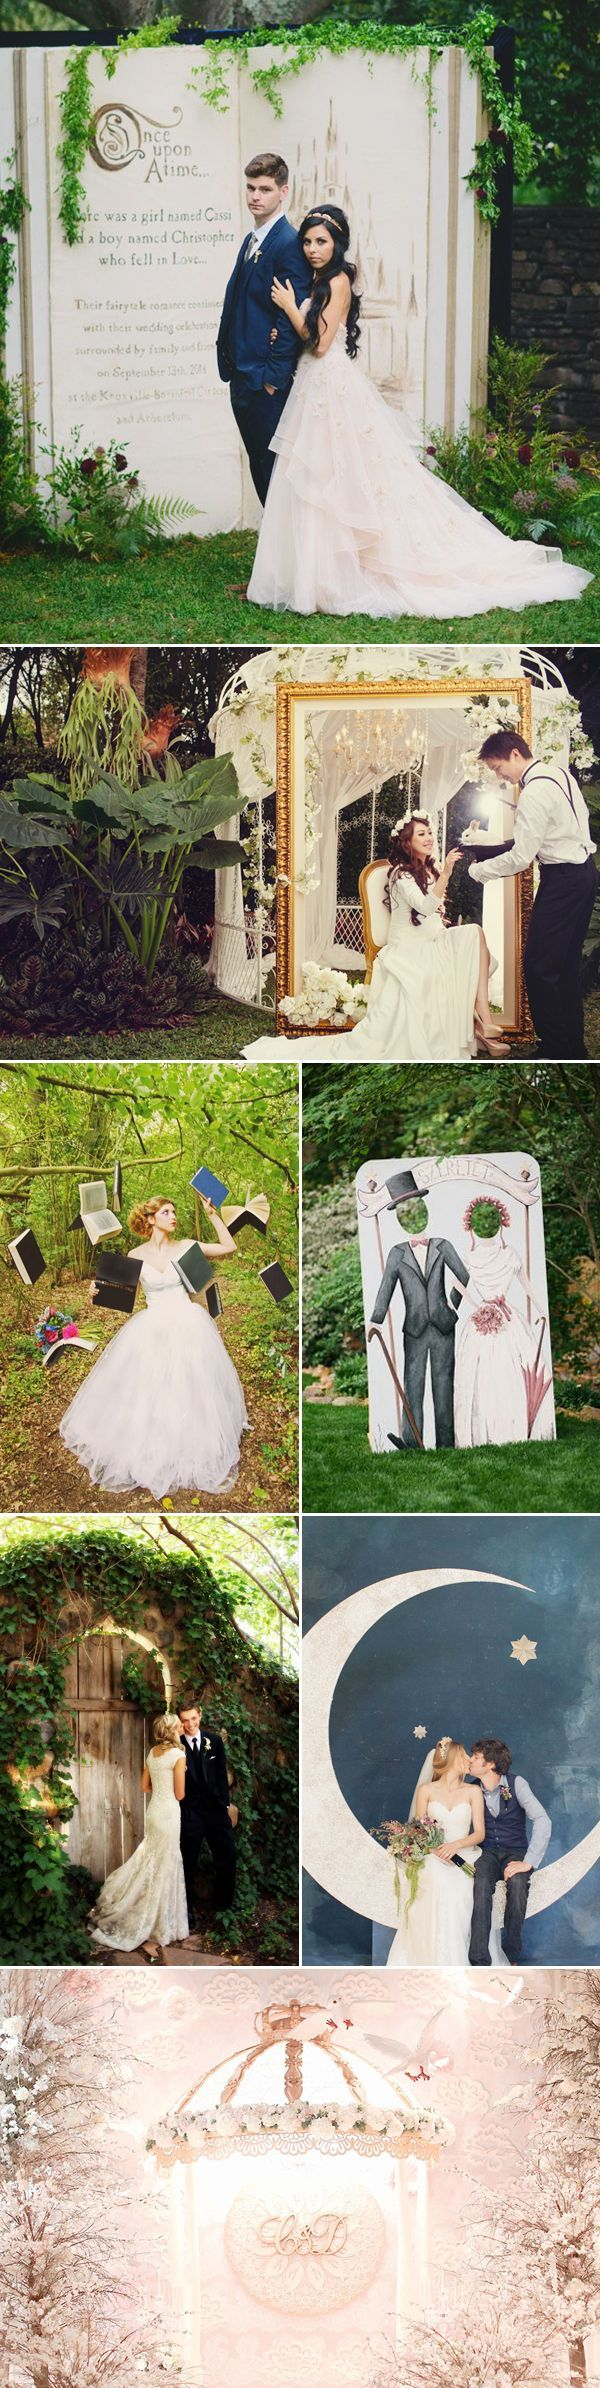 53 Super Creative Wedding Photo Backdrops | http://www.deerpearlflowers.com/53-super-creative-wedding-photo-backdrops/